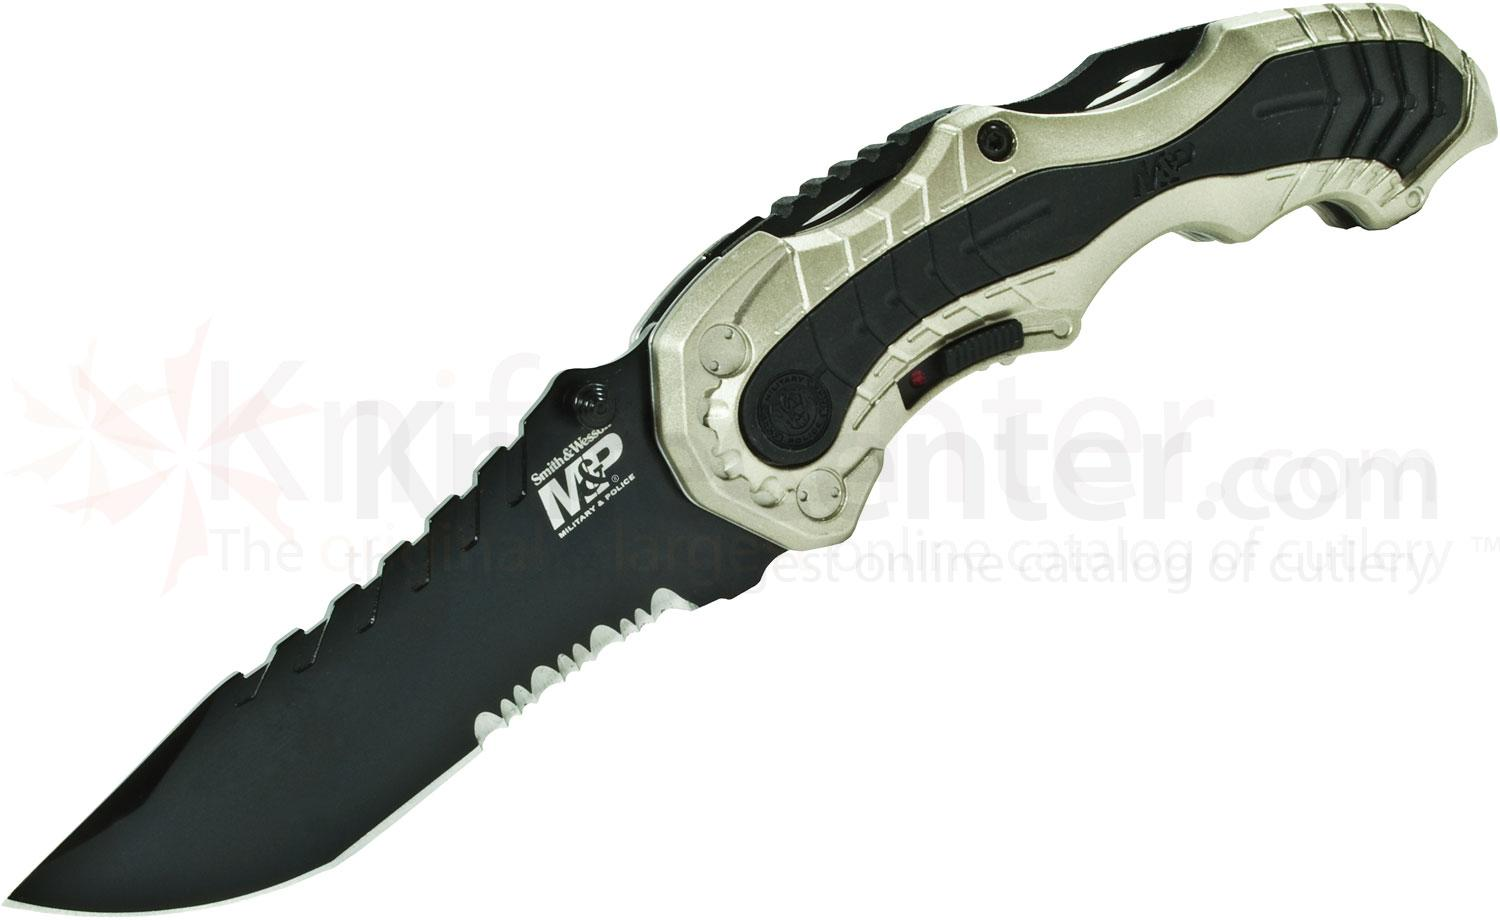 Smith & Wesson M&P MAGIC MP6 Assisted 3.4 inch Black Combo Blade, Champagne Aluminum Handles